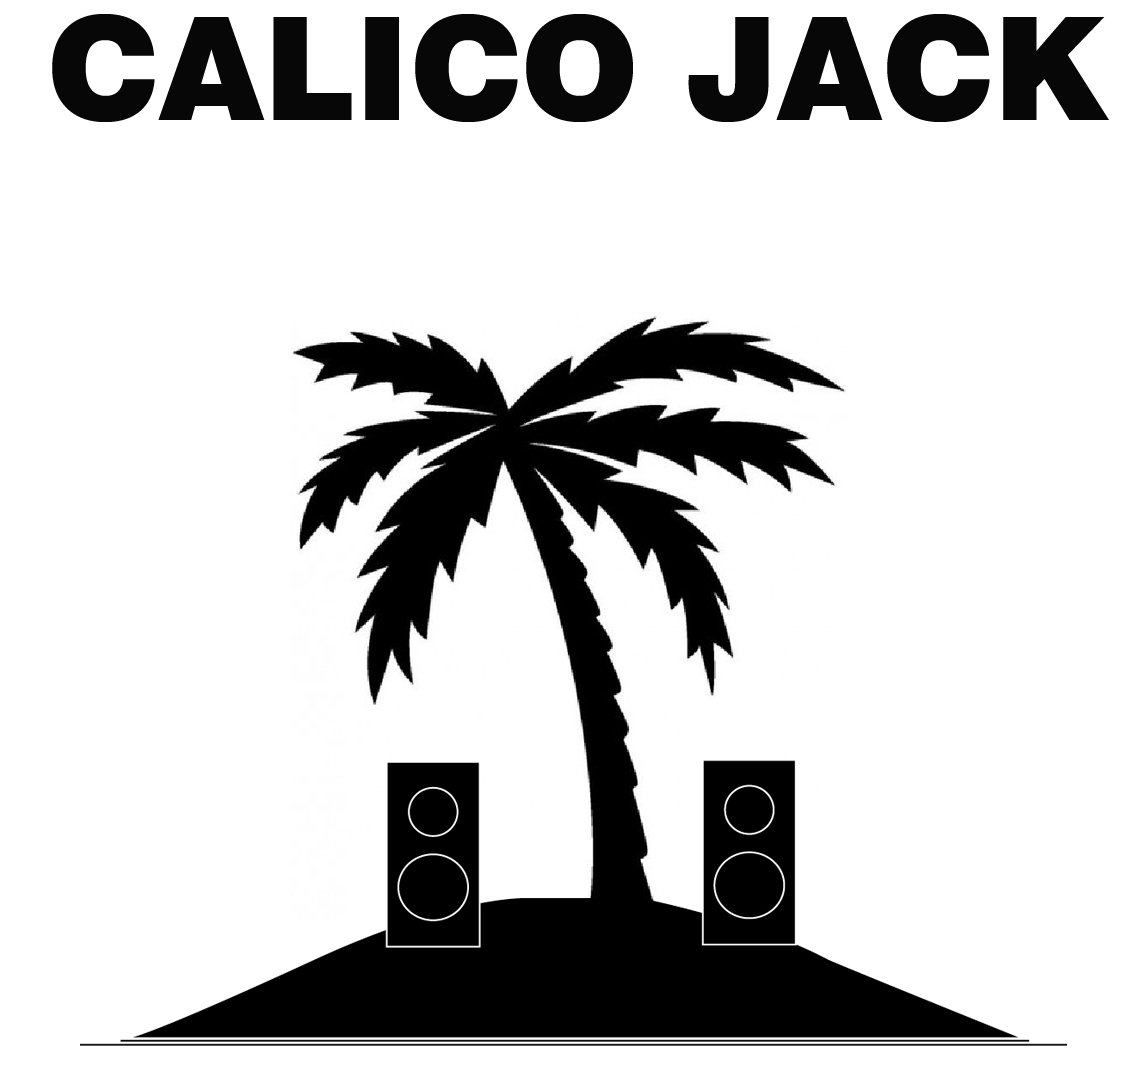 /dms1147  /cargobar-event-pictures/untitled0/untitled3/untitled0/CALICO-JACK/CALICO%20JACK.jpg